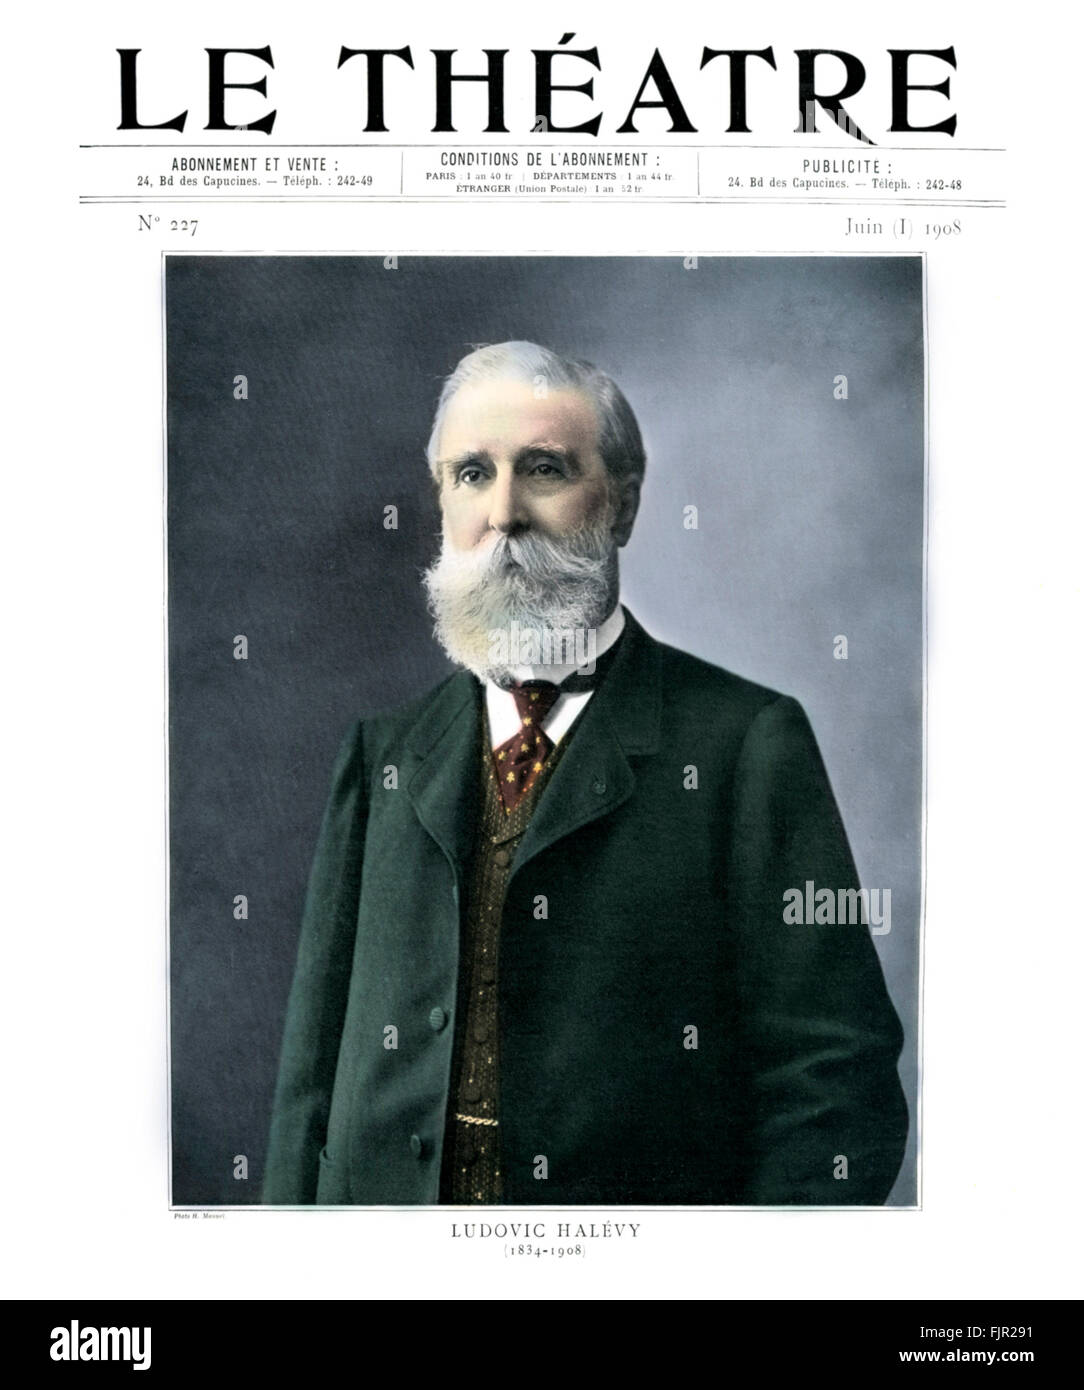 Ludovic Halévy, portrait, 1908.  French author and playwright 1 January 1834 – 7 May 1908. - Stock Image